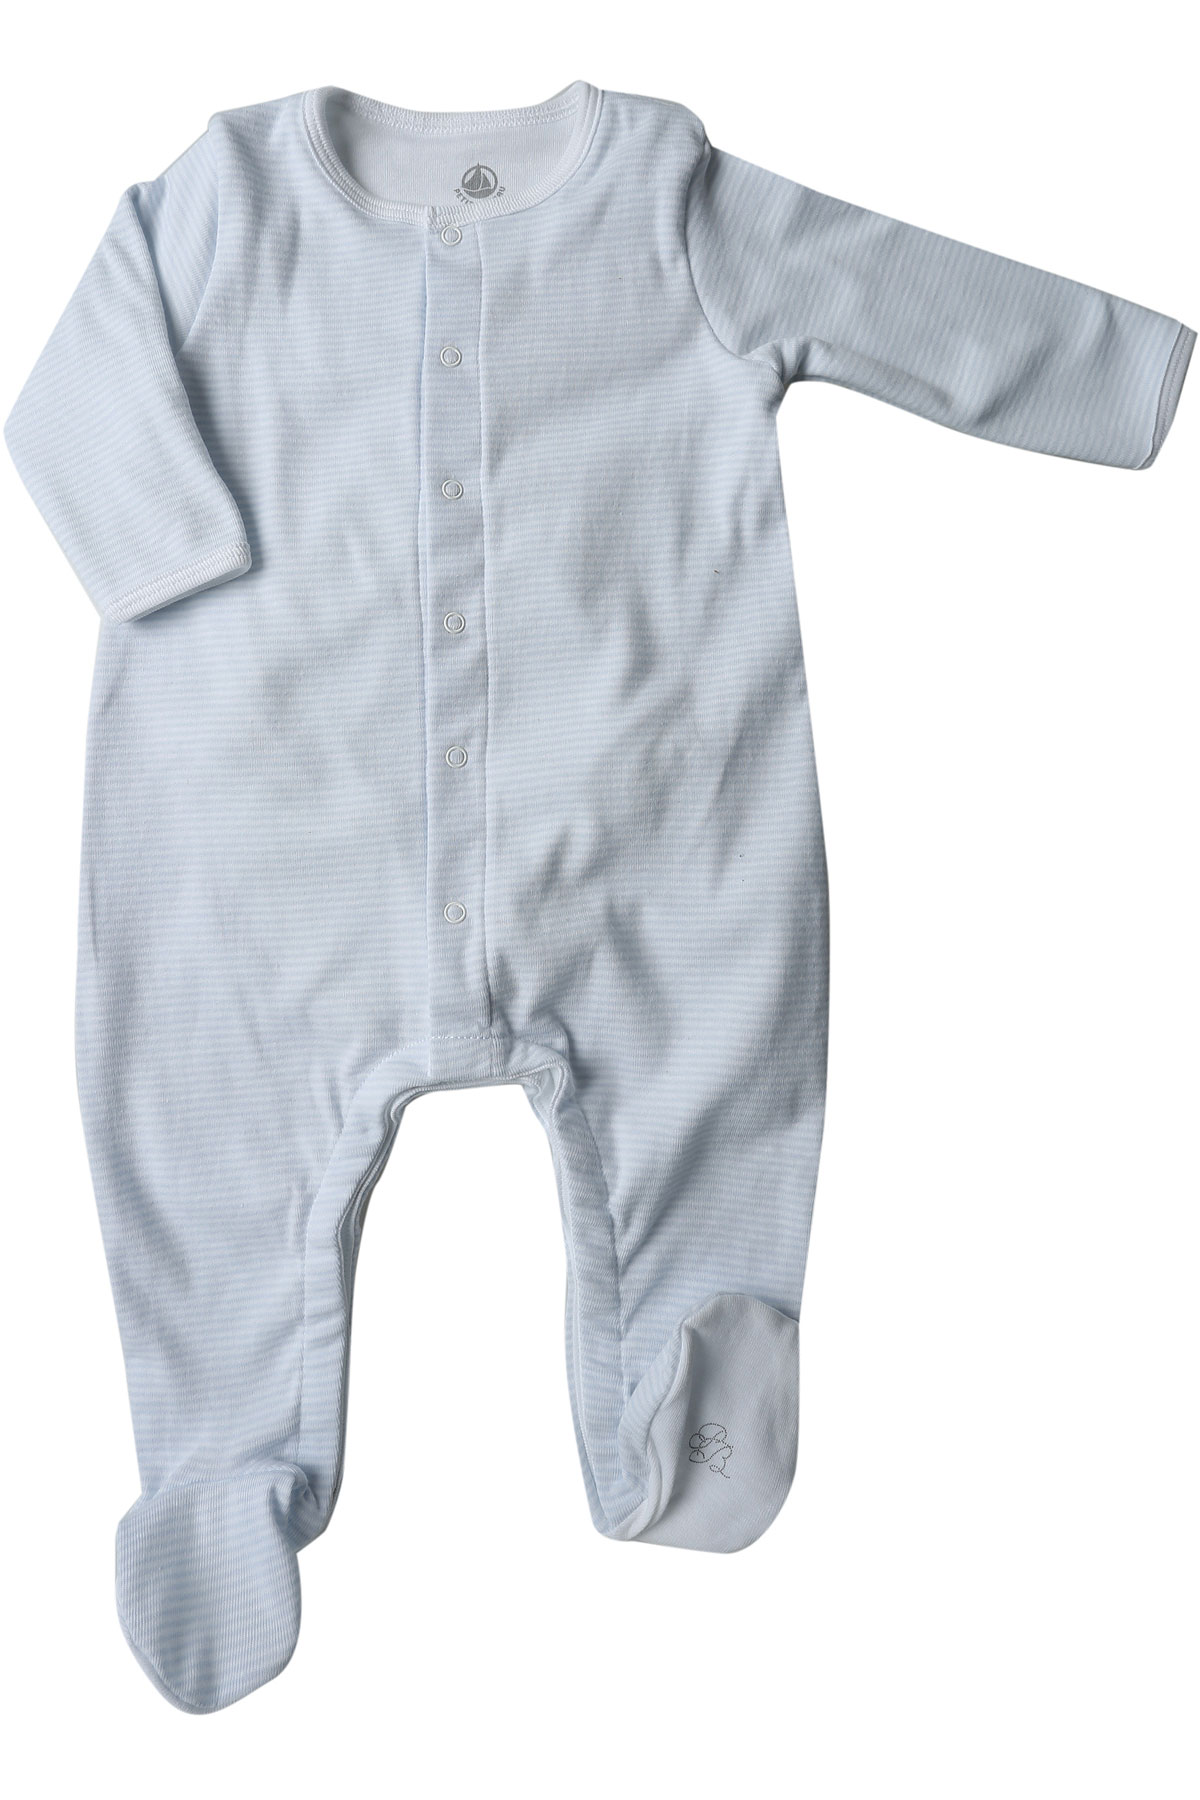 Petit Bateau Baby Bodysuits & Onesies for Boys, Sky Blue, Cotton, 2017, 1M 3M 6M USA-447881